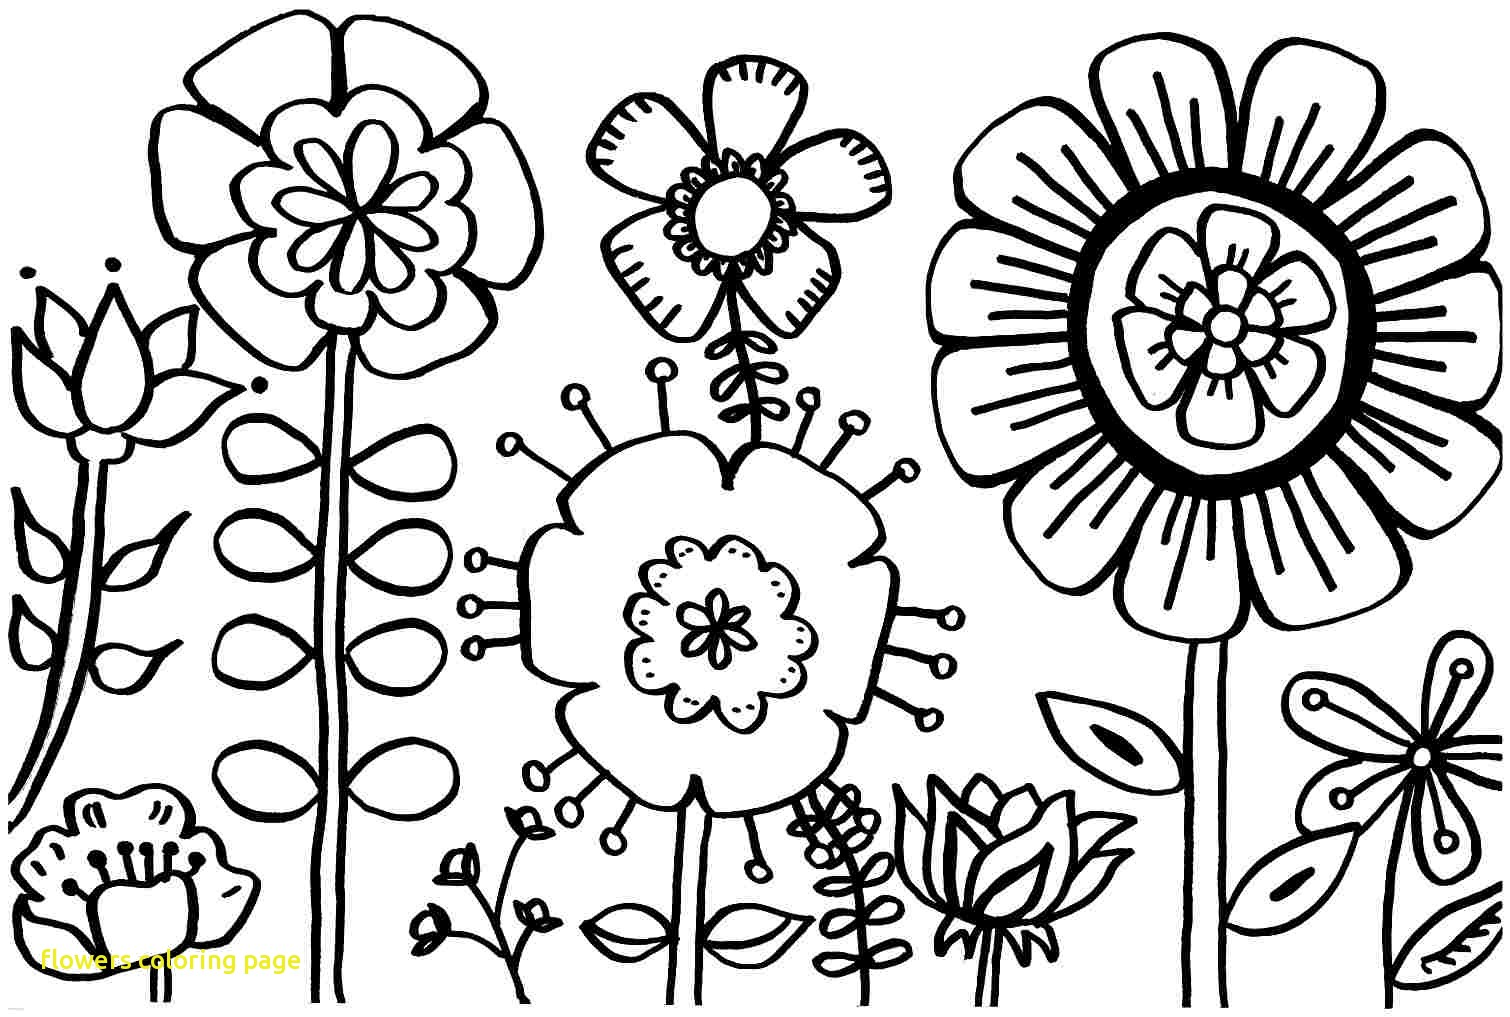 Full Size Printable Coloring Pages At Getcolorings